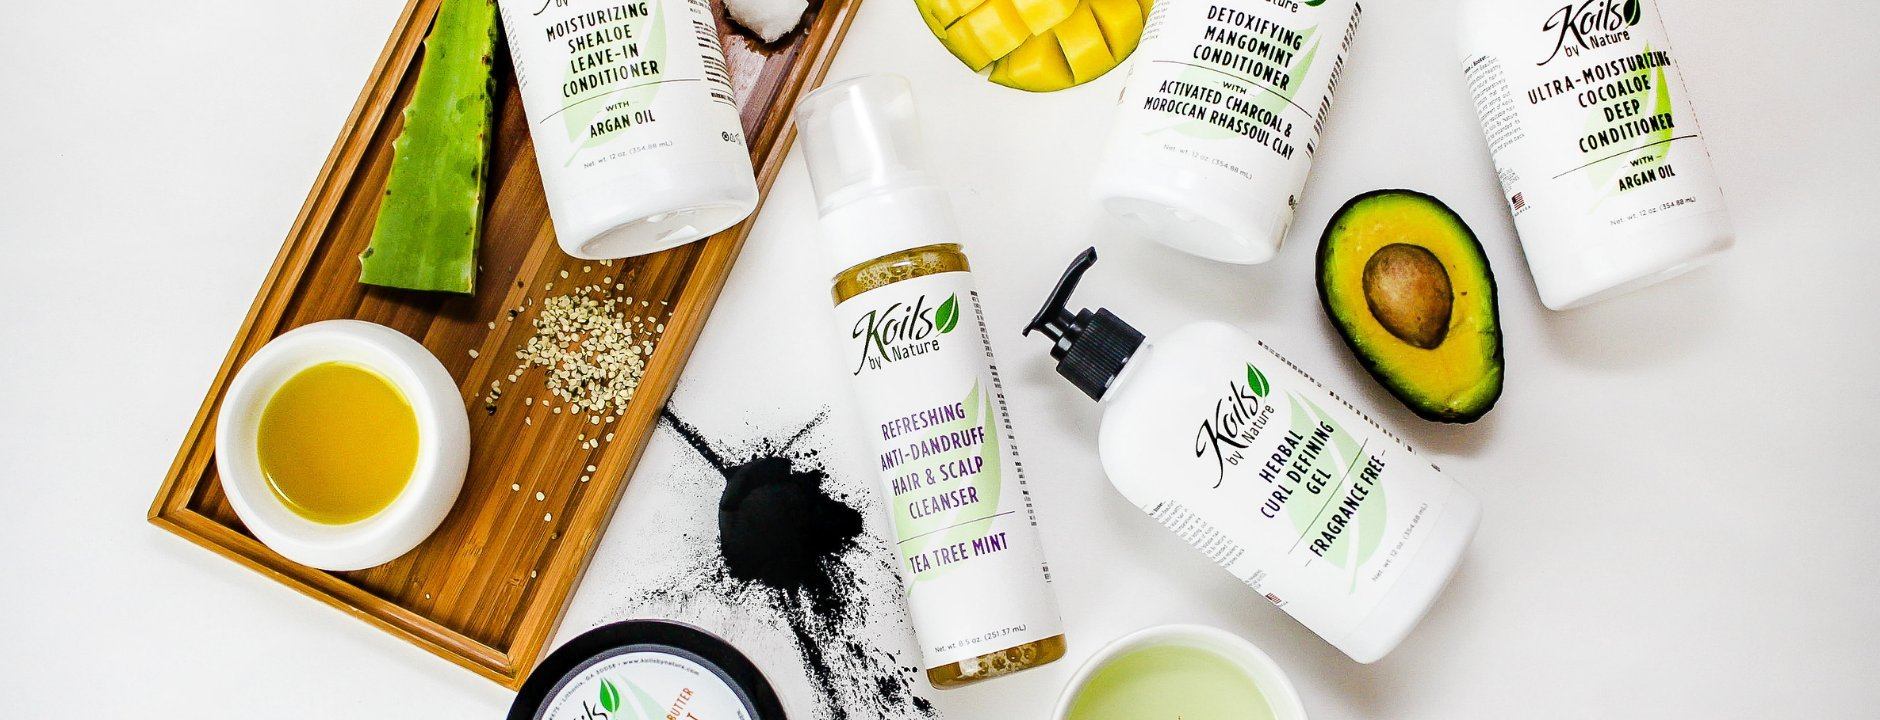 Koils by Nature Products